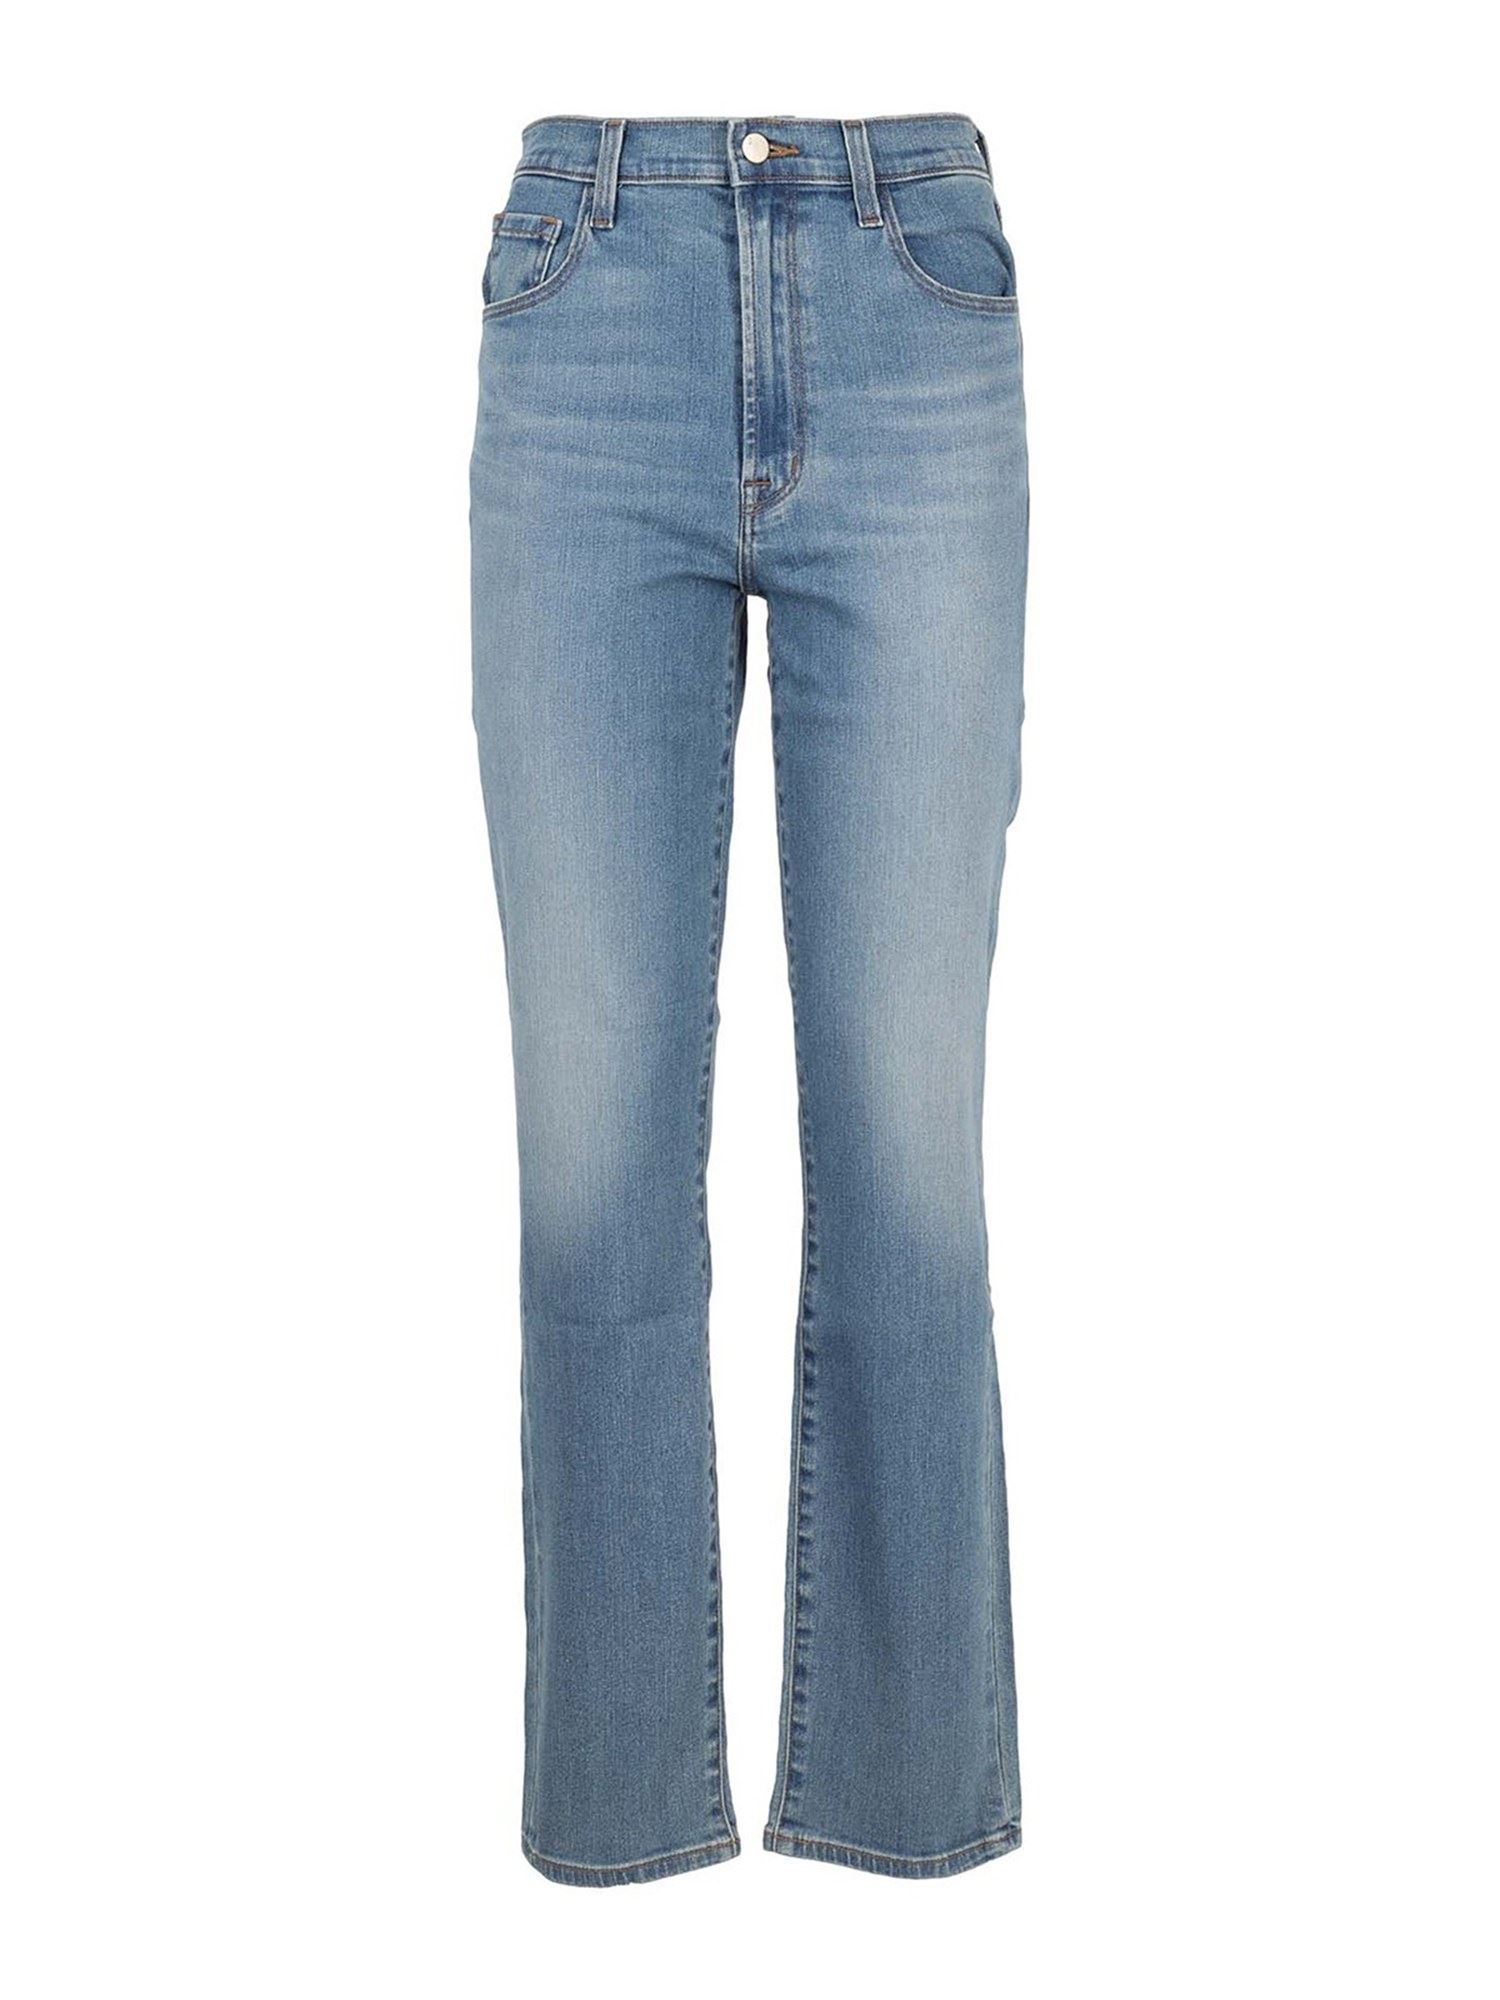 J Brand HIGH RISE TEAGAN JEANS IN LIGHT BLUE